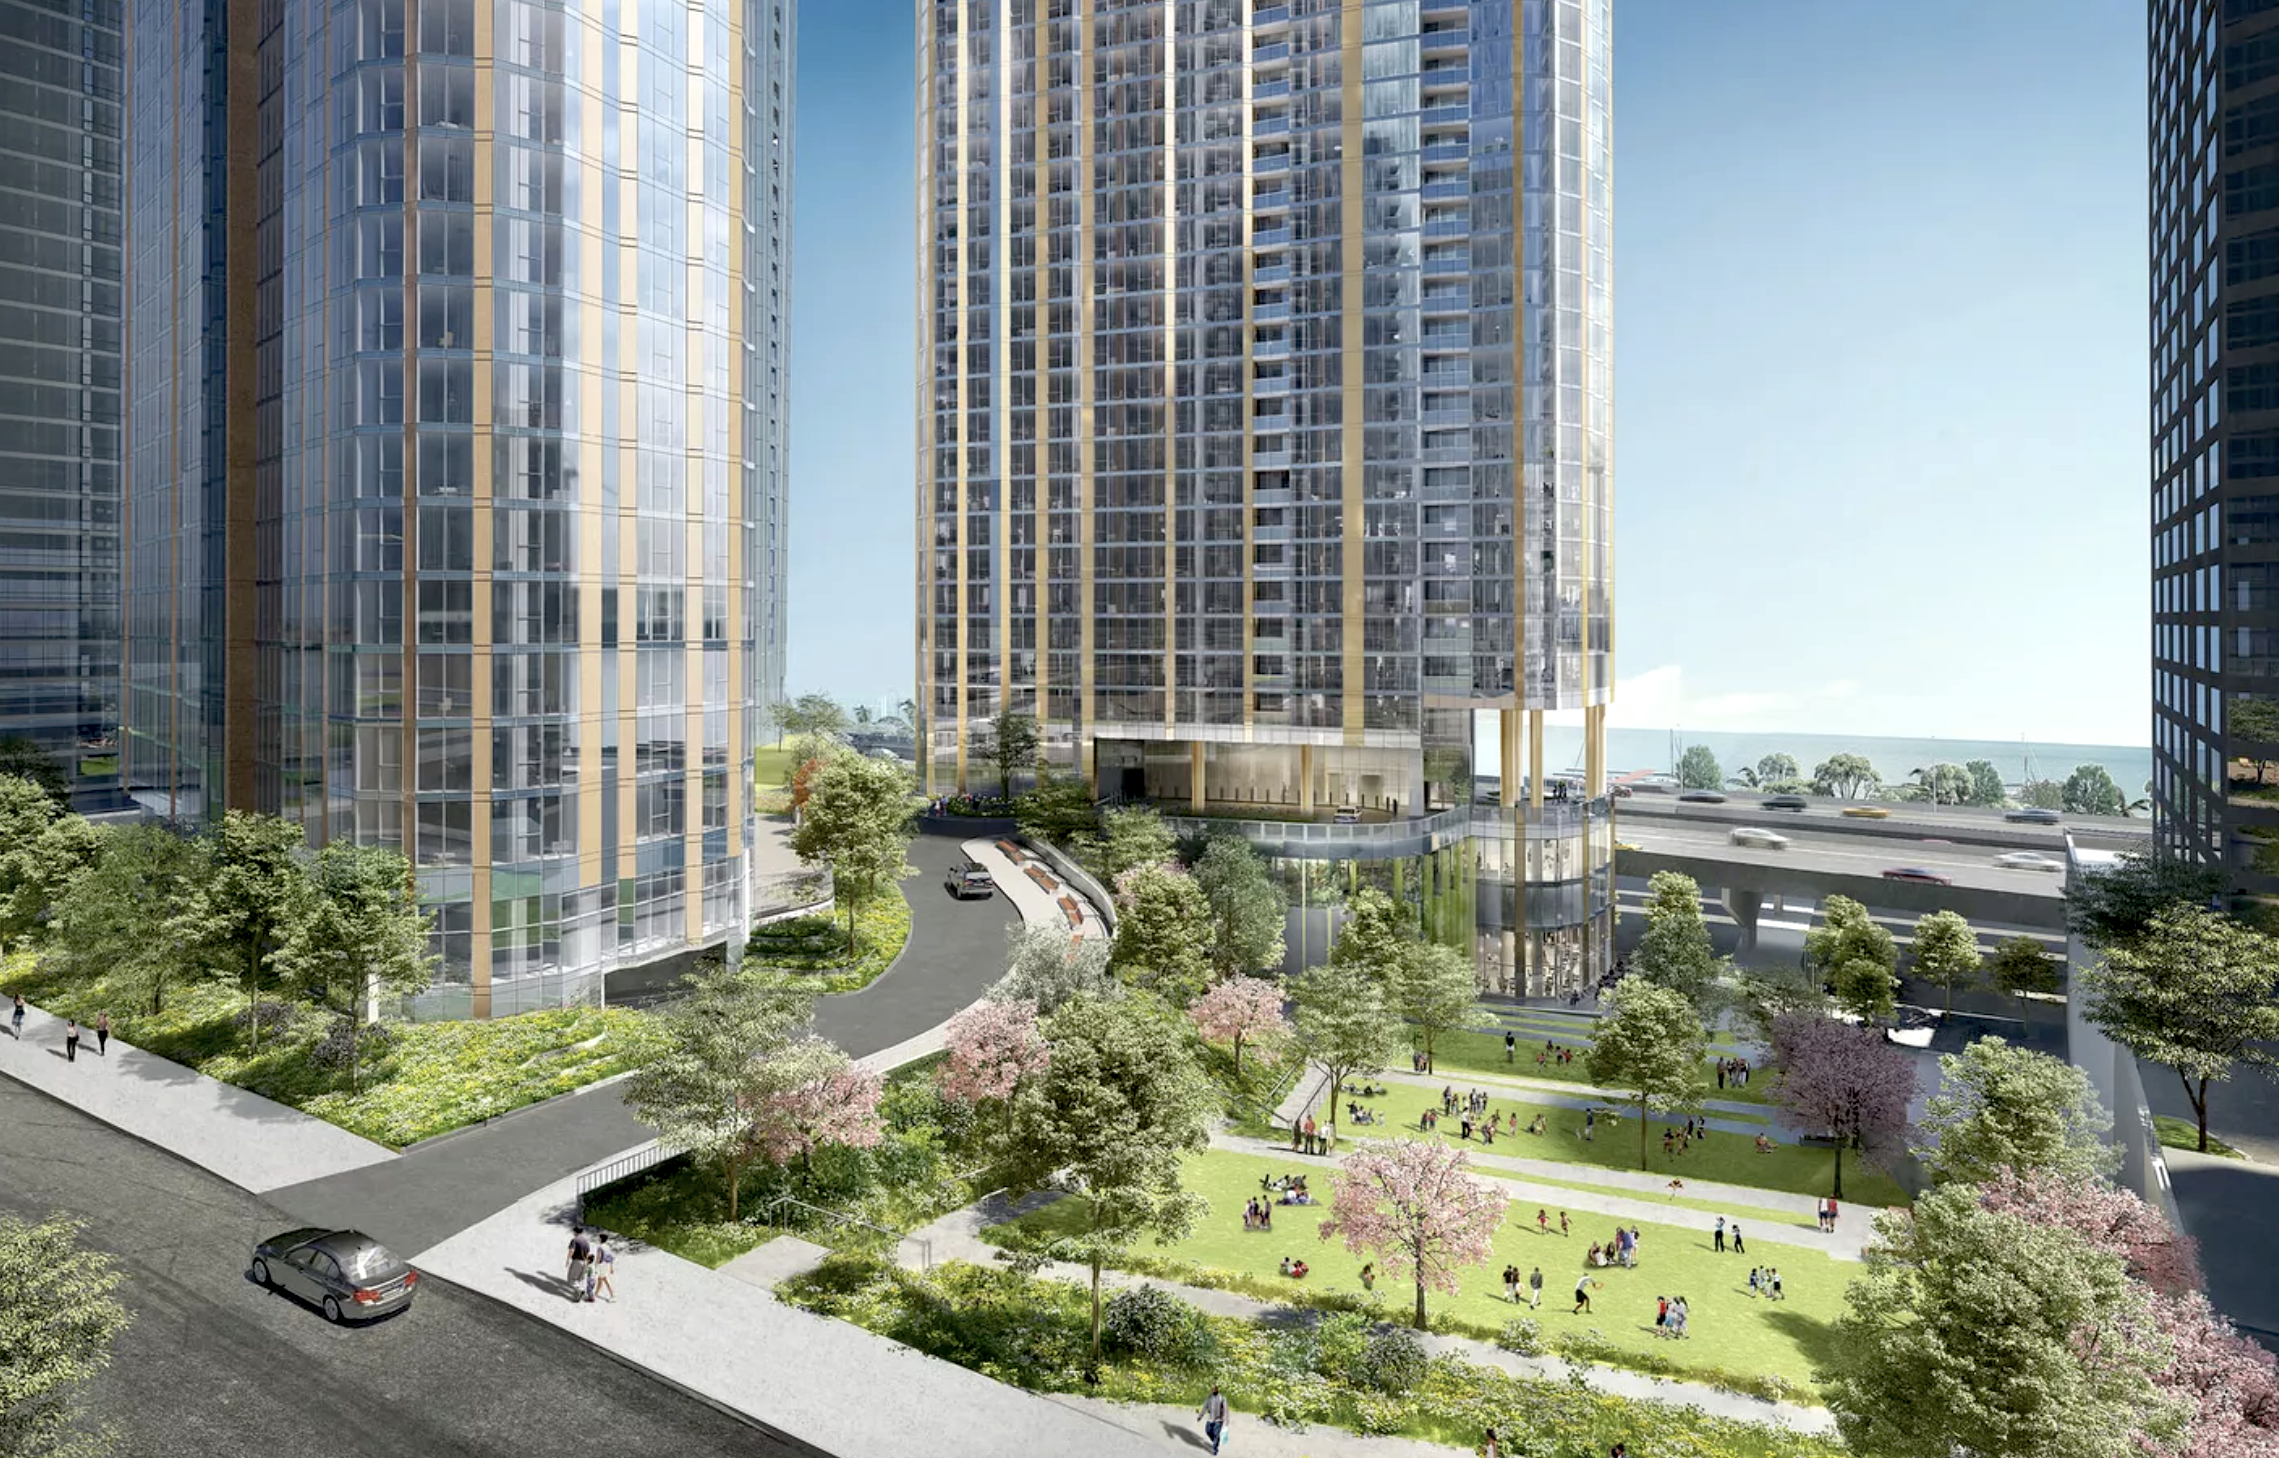 Two high-rise towers with glass and metal exteriors rise next to a sloping downward park and path below an elevated highway. A large body of water is on the horizon.